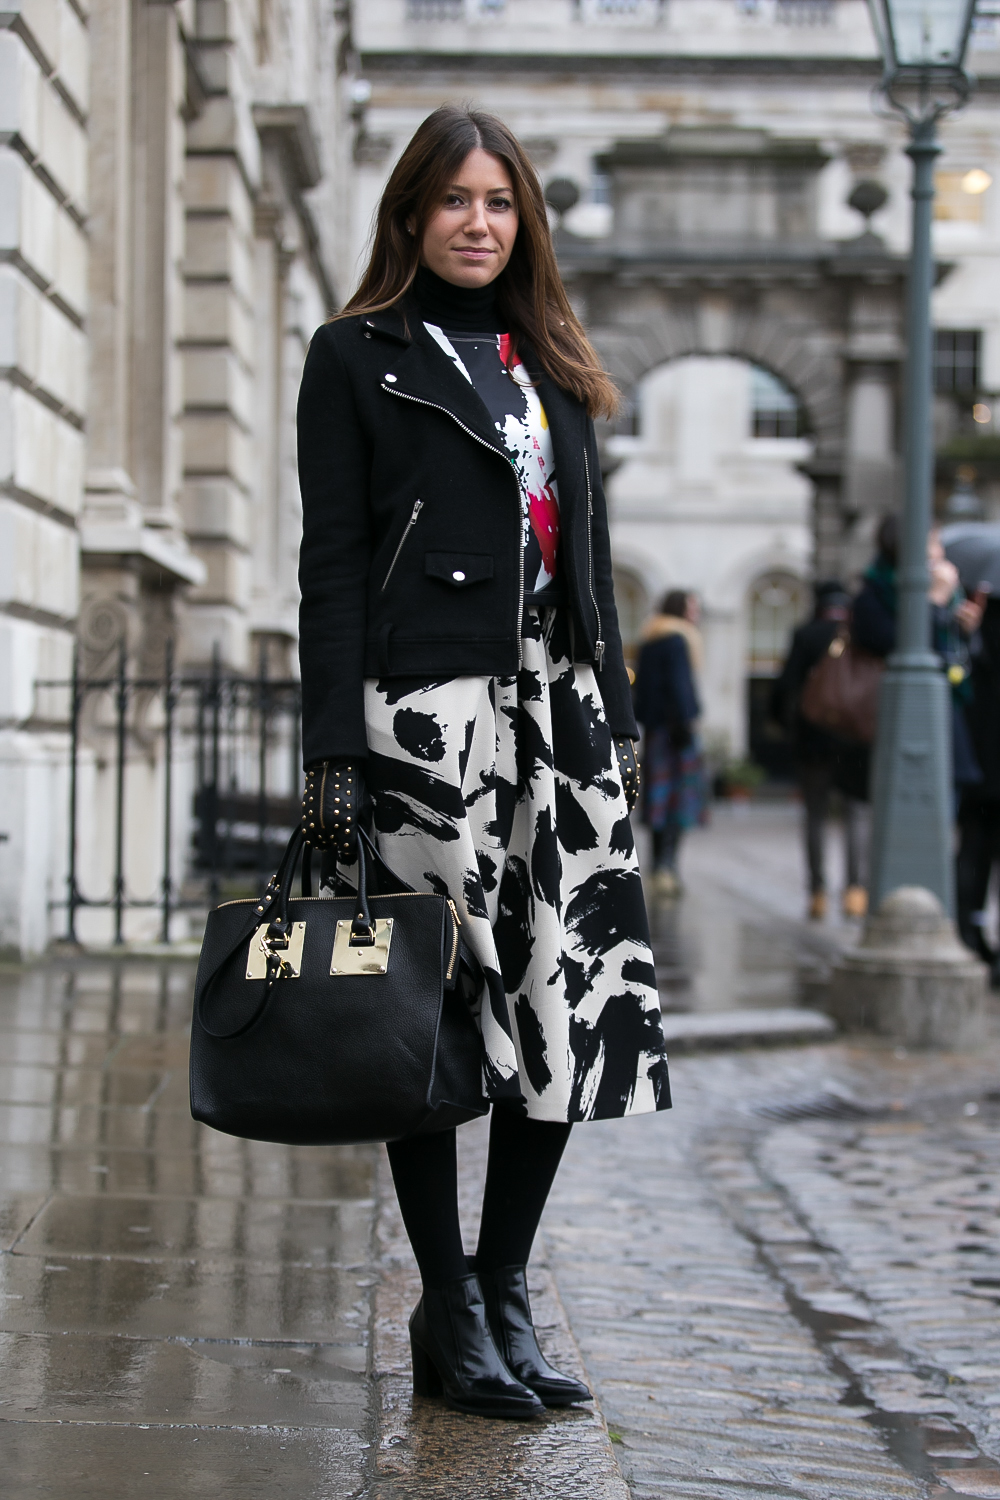 London Street Style With Camille Charrière At London: Canon Live. #canonfashion. London Fashion Week. Day 1